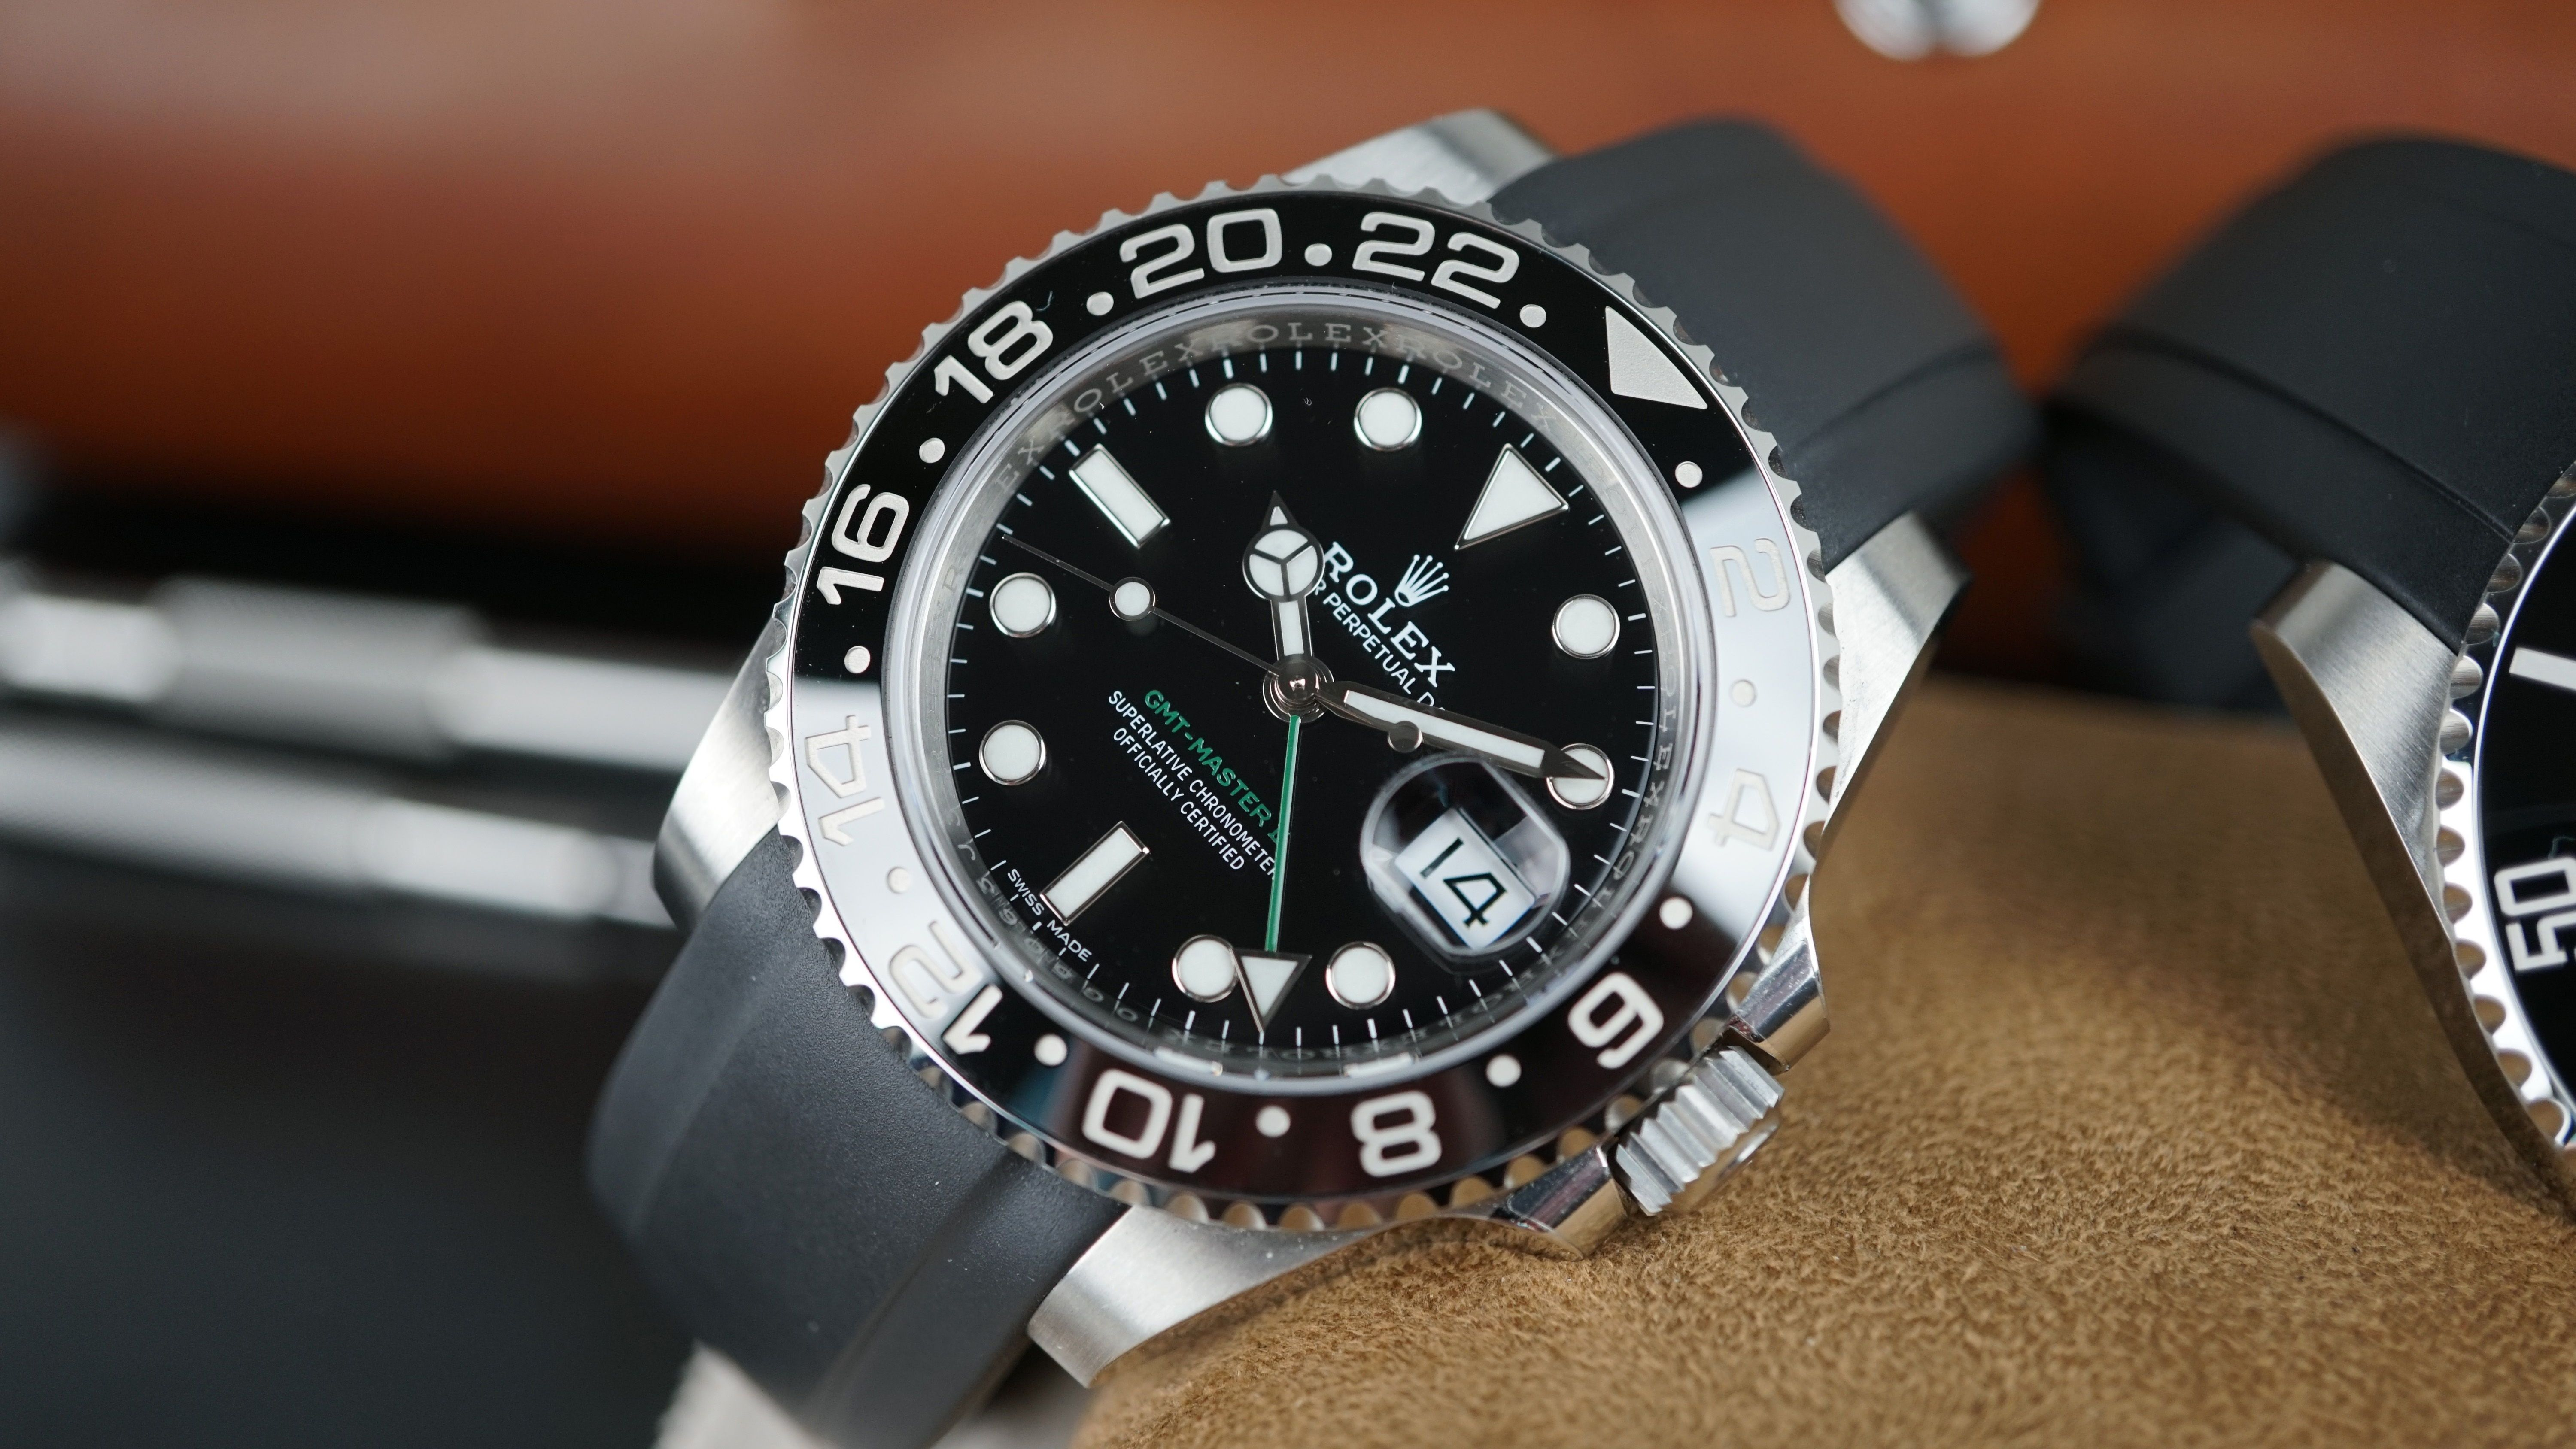 Black Rubber Looks Sharp On The Gmt Ceramic Ln Customize Your Rolex Watch At Www Everestbands Com Rolexpepsi Blnr Gmtmas Rolex Watches Rolex Gmt Rolex